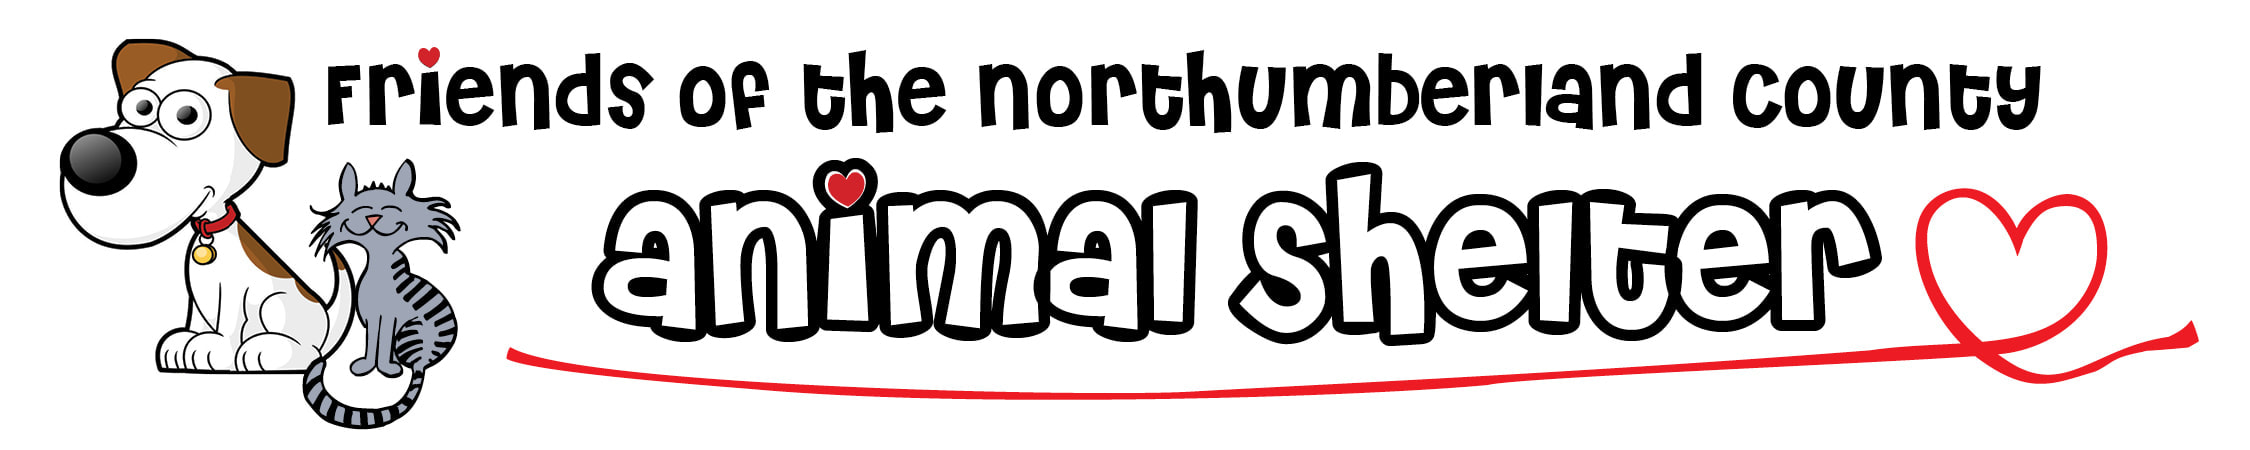 friends-of-the-northumberland-county-animal-shelter-logo